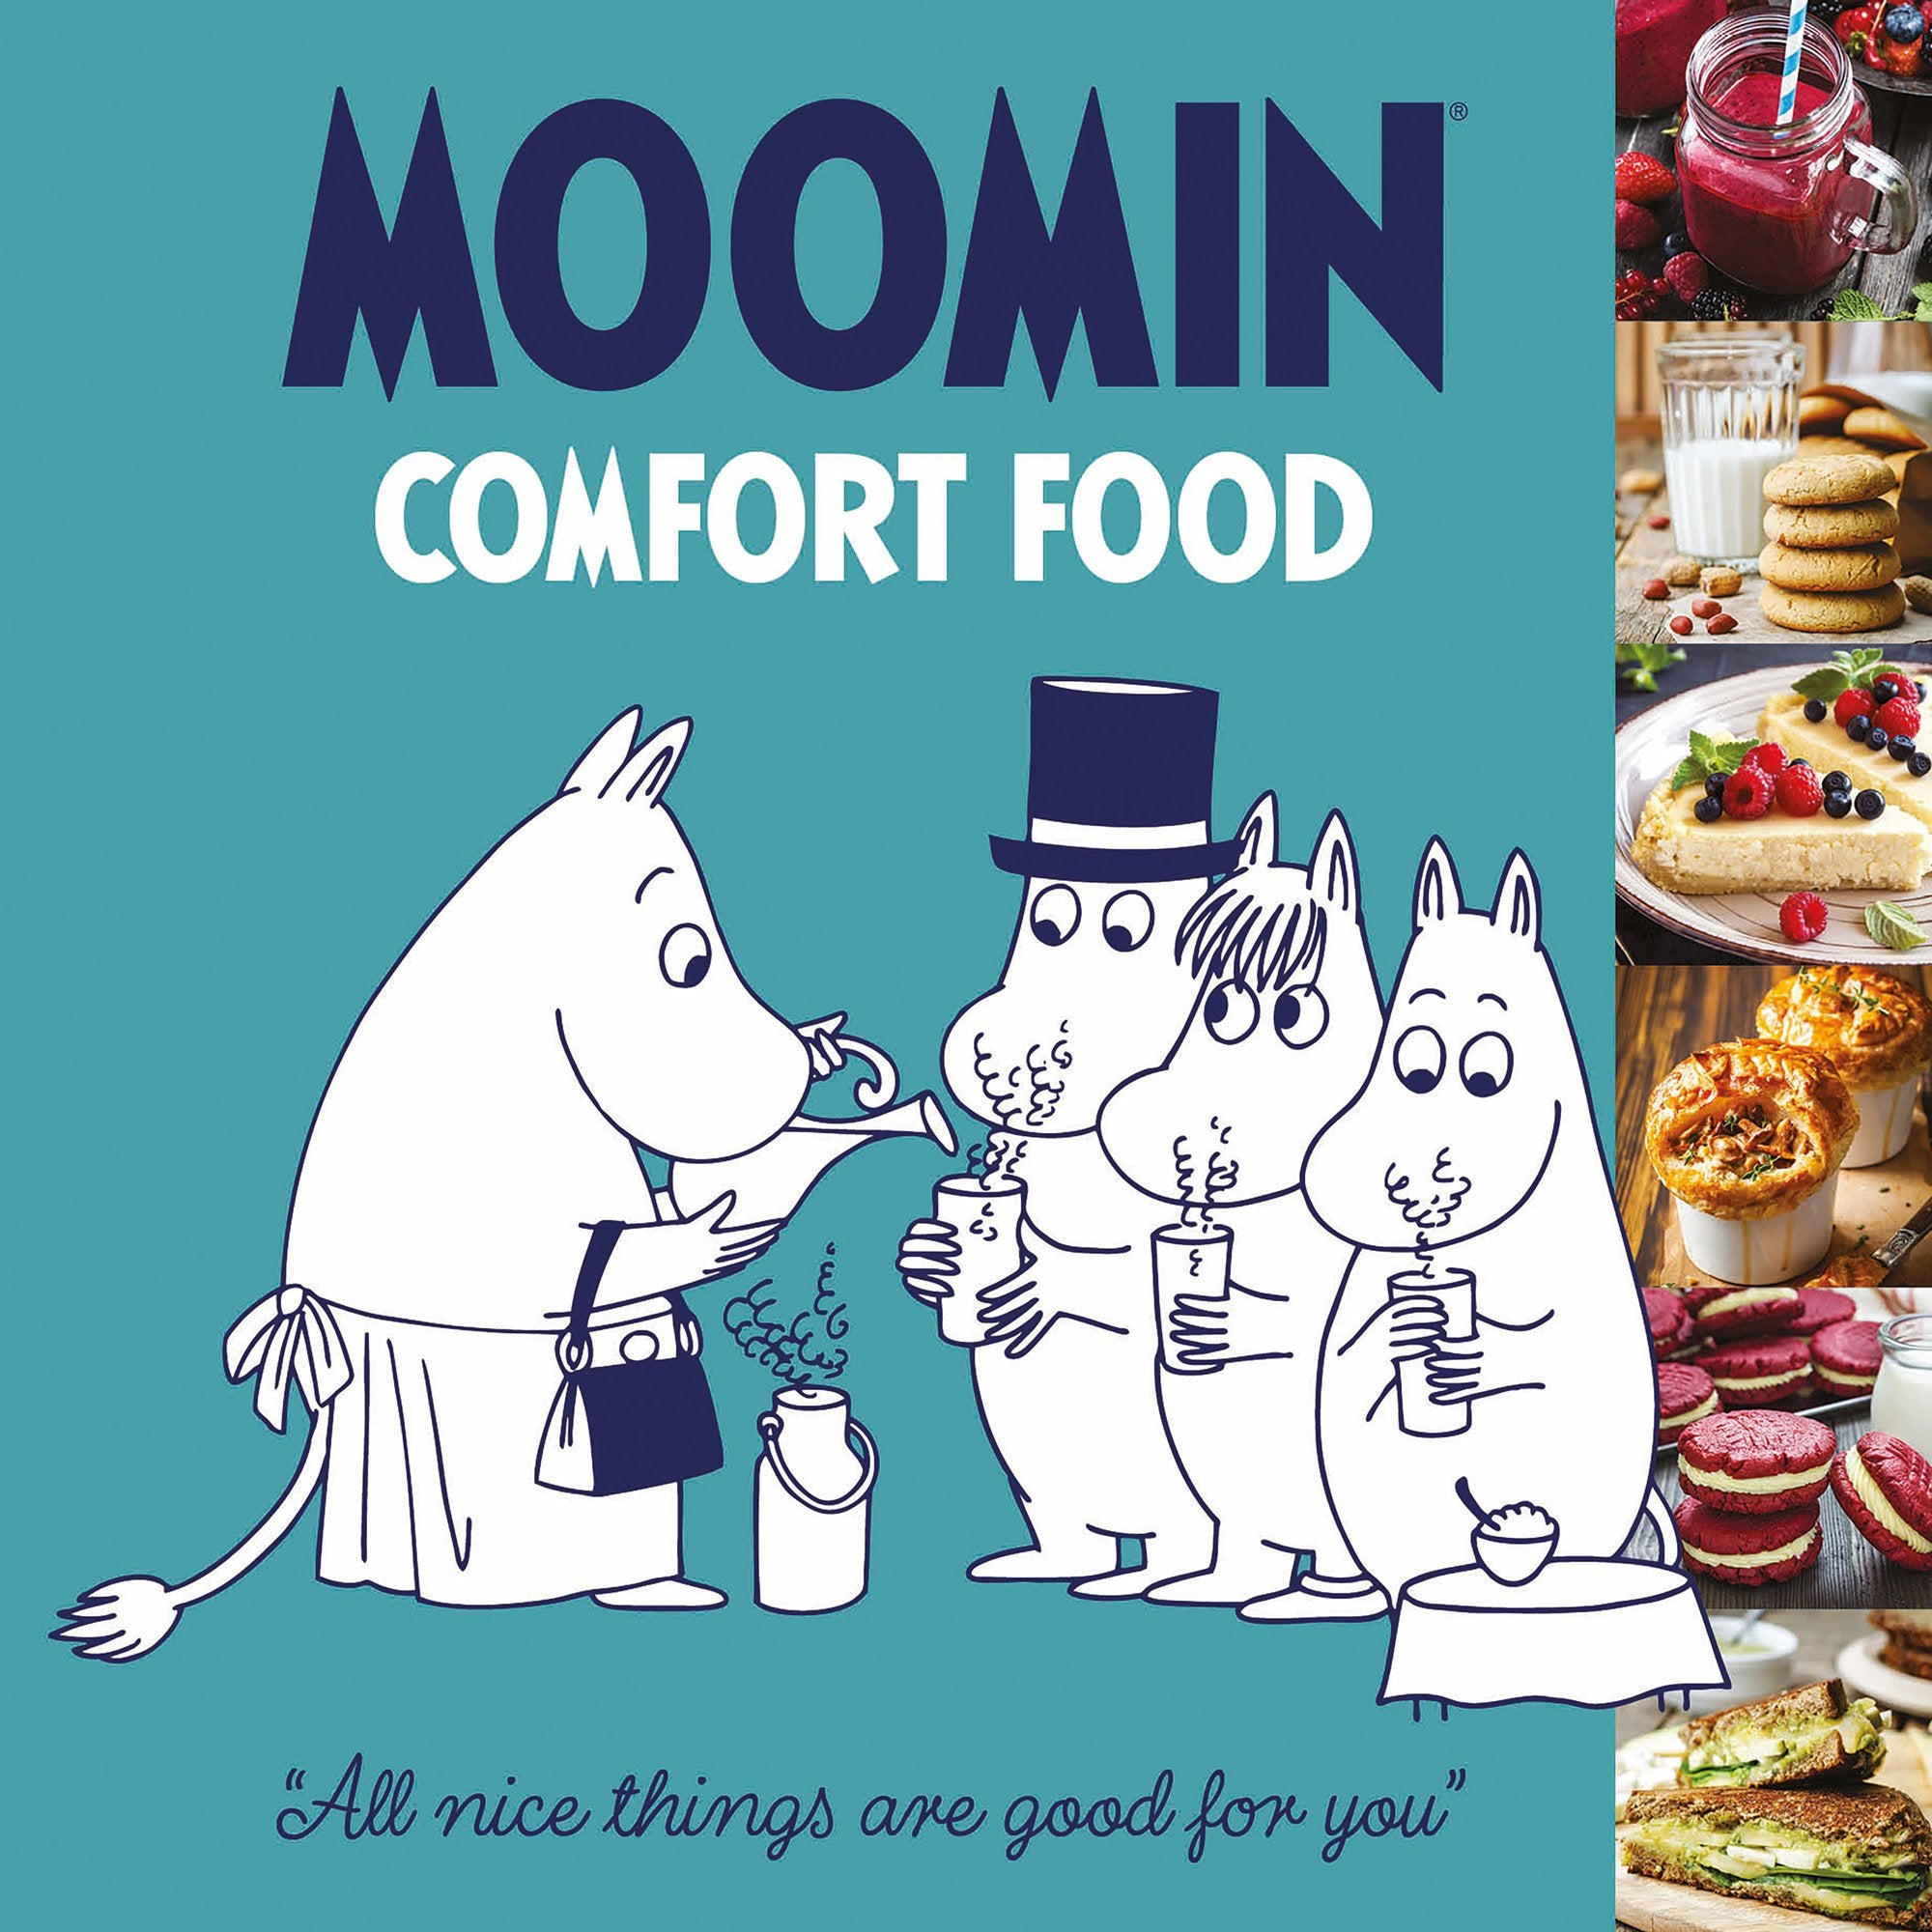 Moomin Comfort Food - Half Moon Bay US